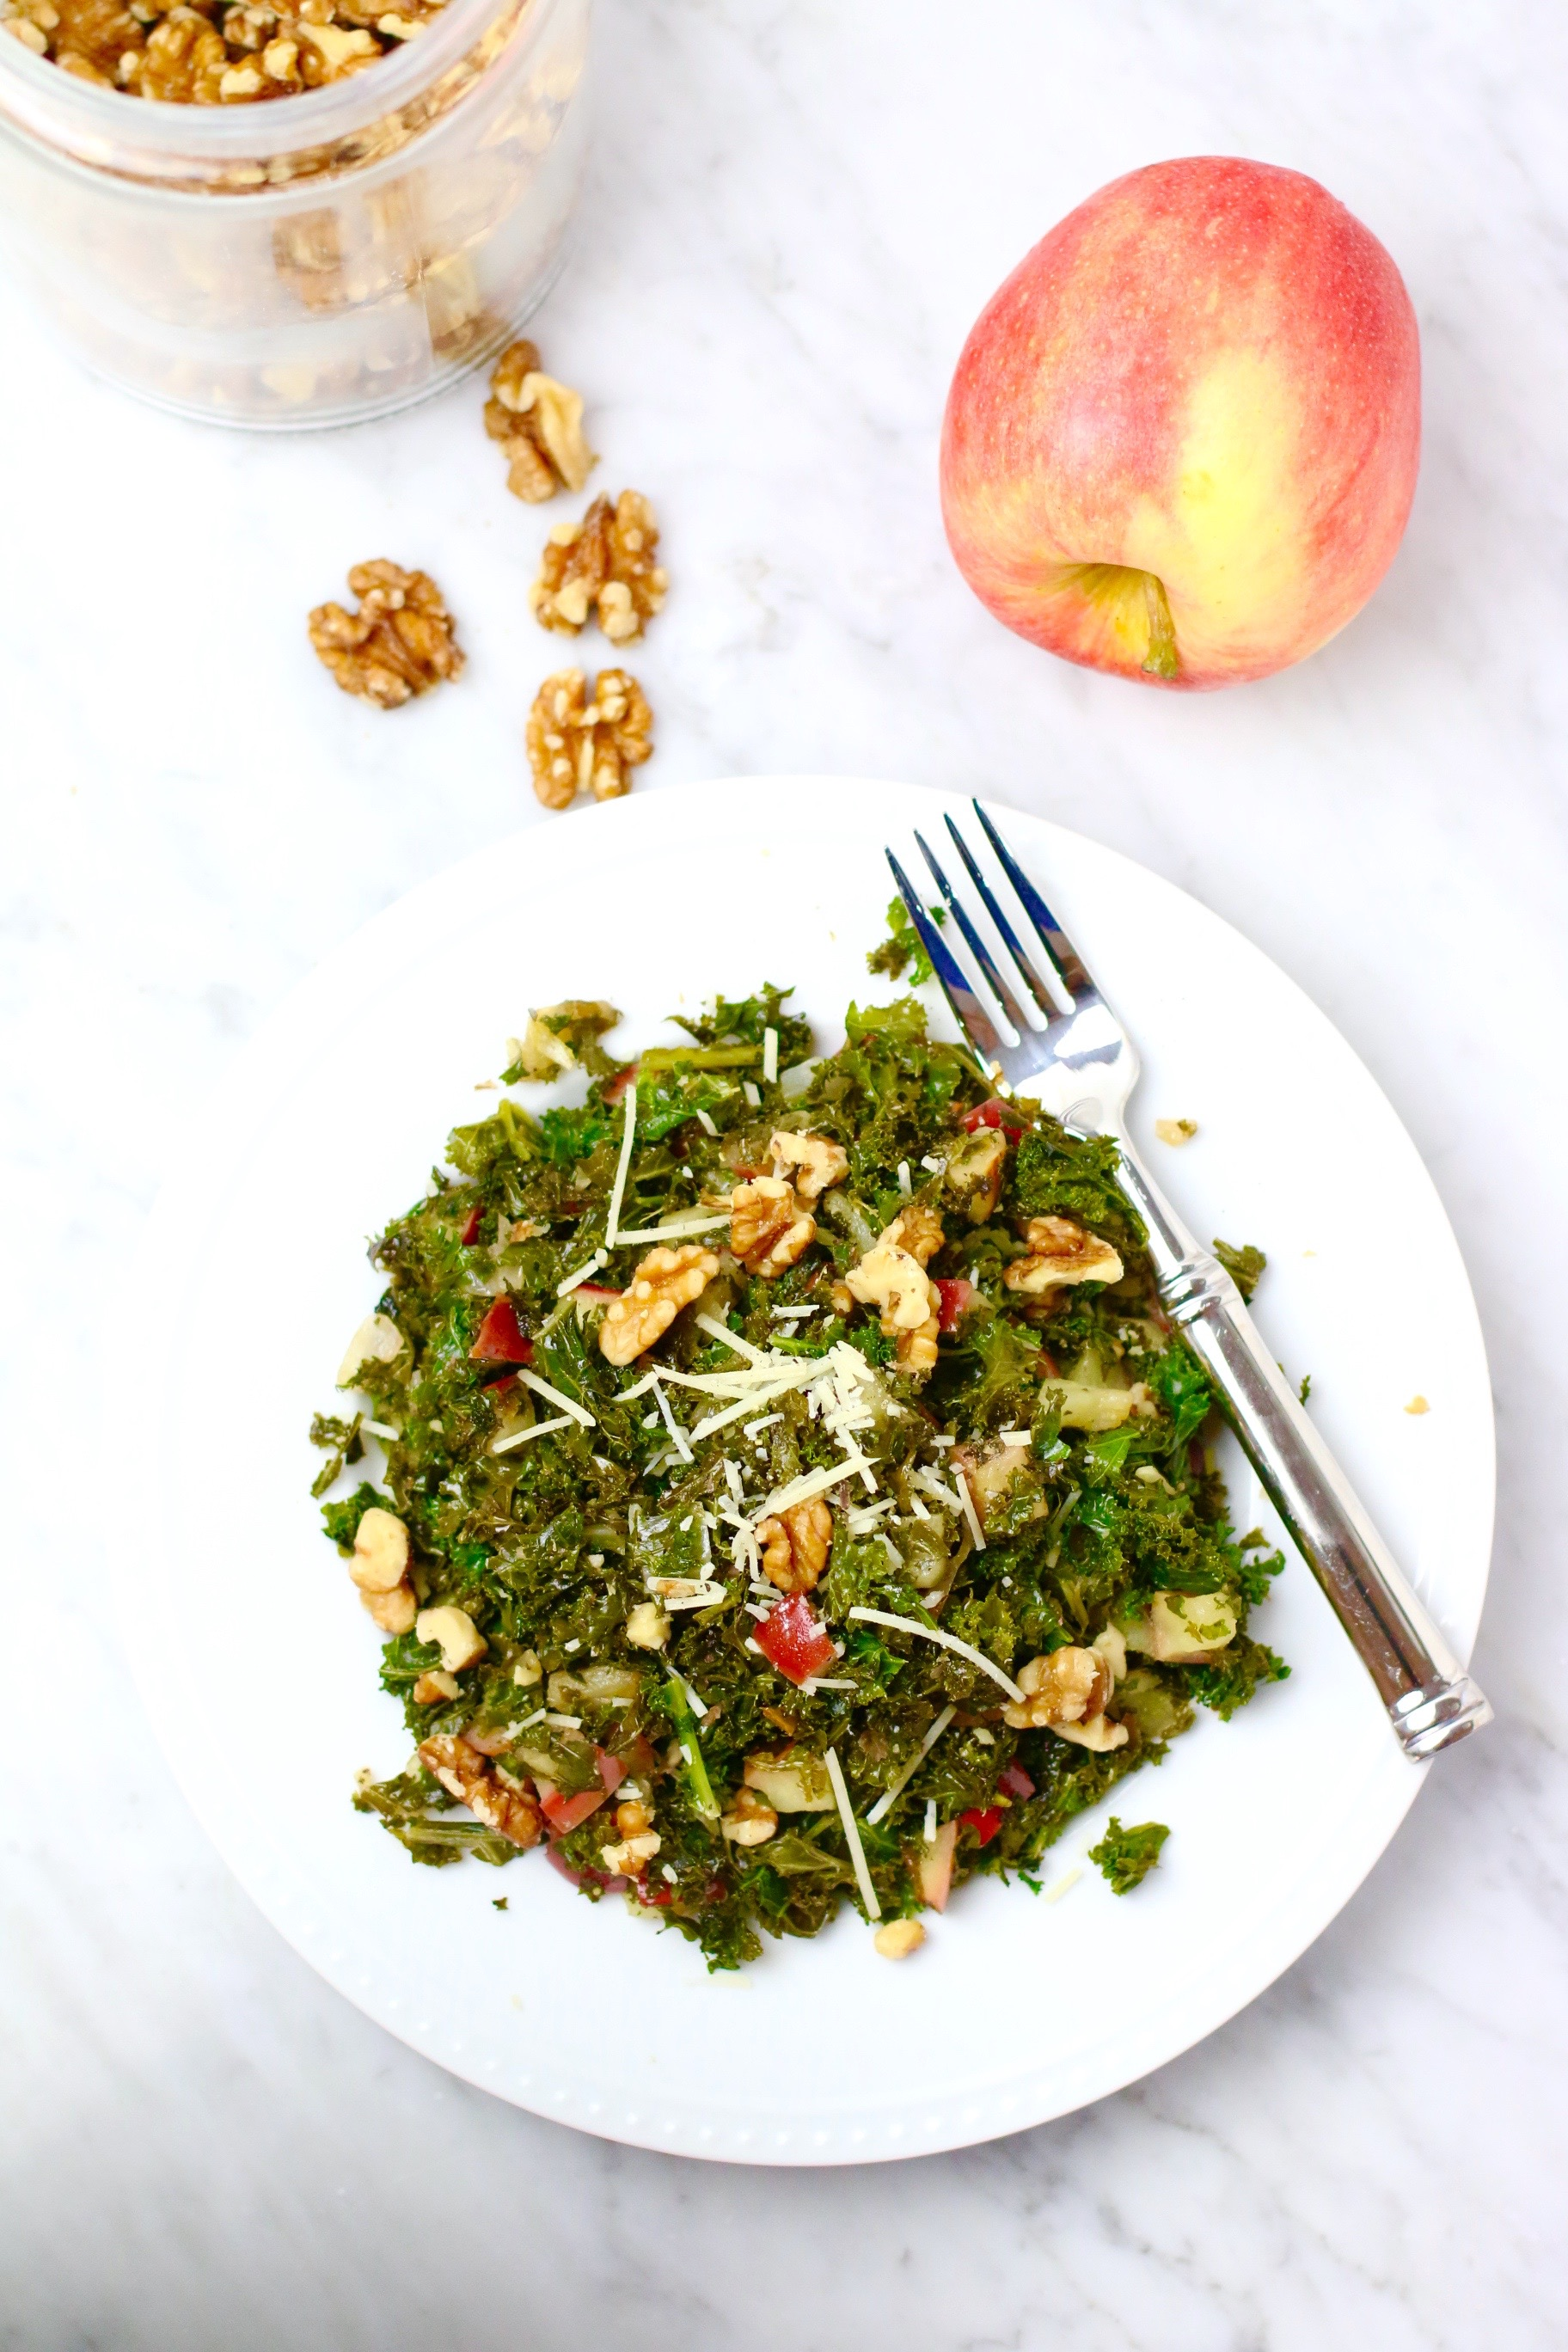 Sauteed Kale Salad with Walnuts and Apples